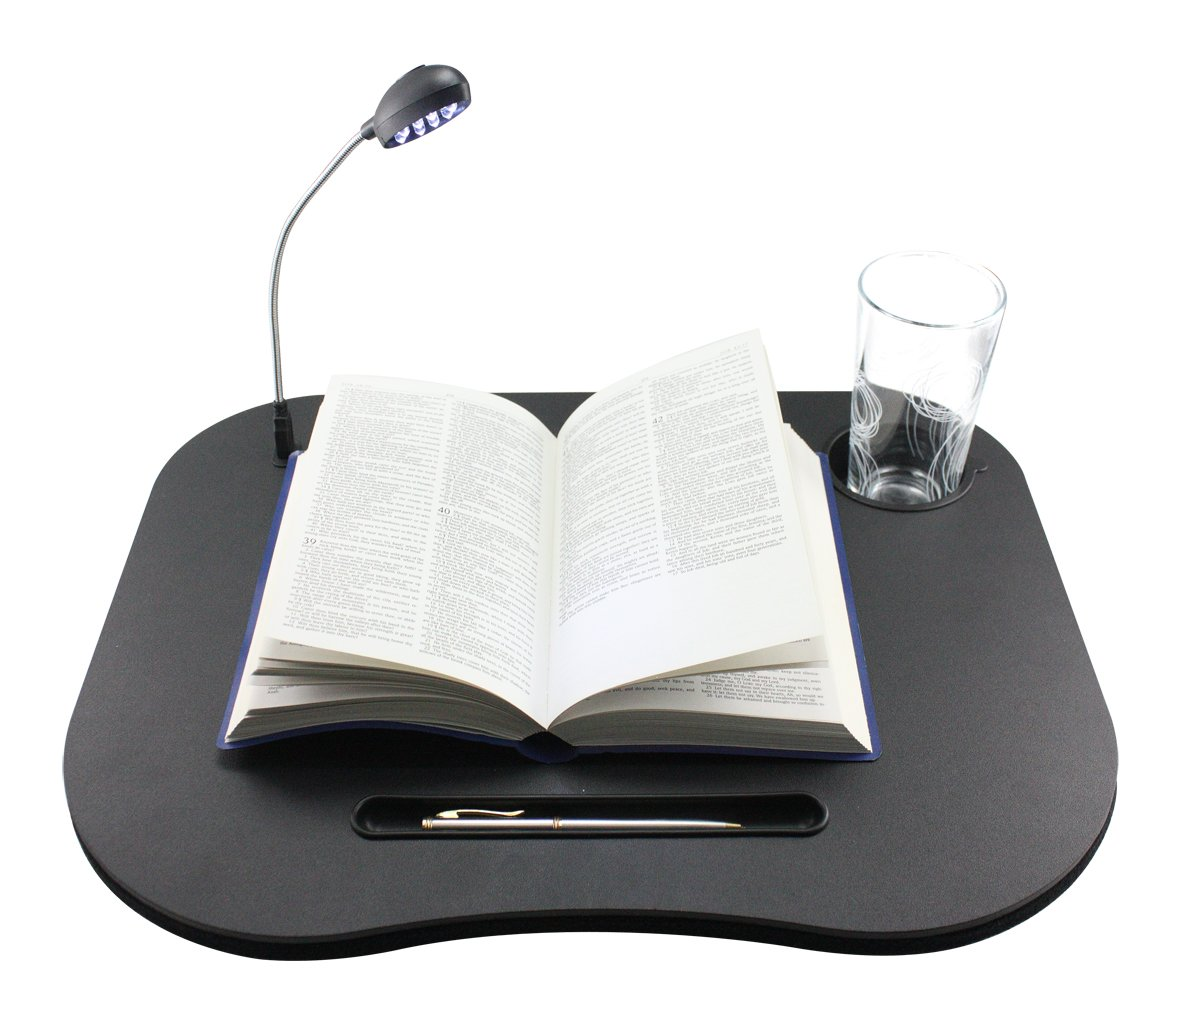 Lap Desk / Laptop Desk with USB socket, LED Light, cup holder, pen holder and comfortable cusion. Laptop tray, Laptop cushion, Laptop table, Laptop stand, Laptop tray Select Select LAP1